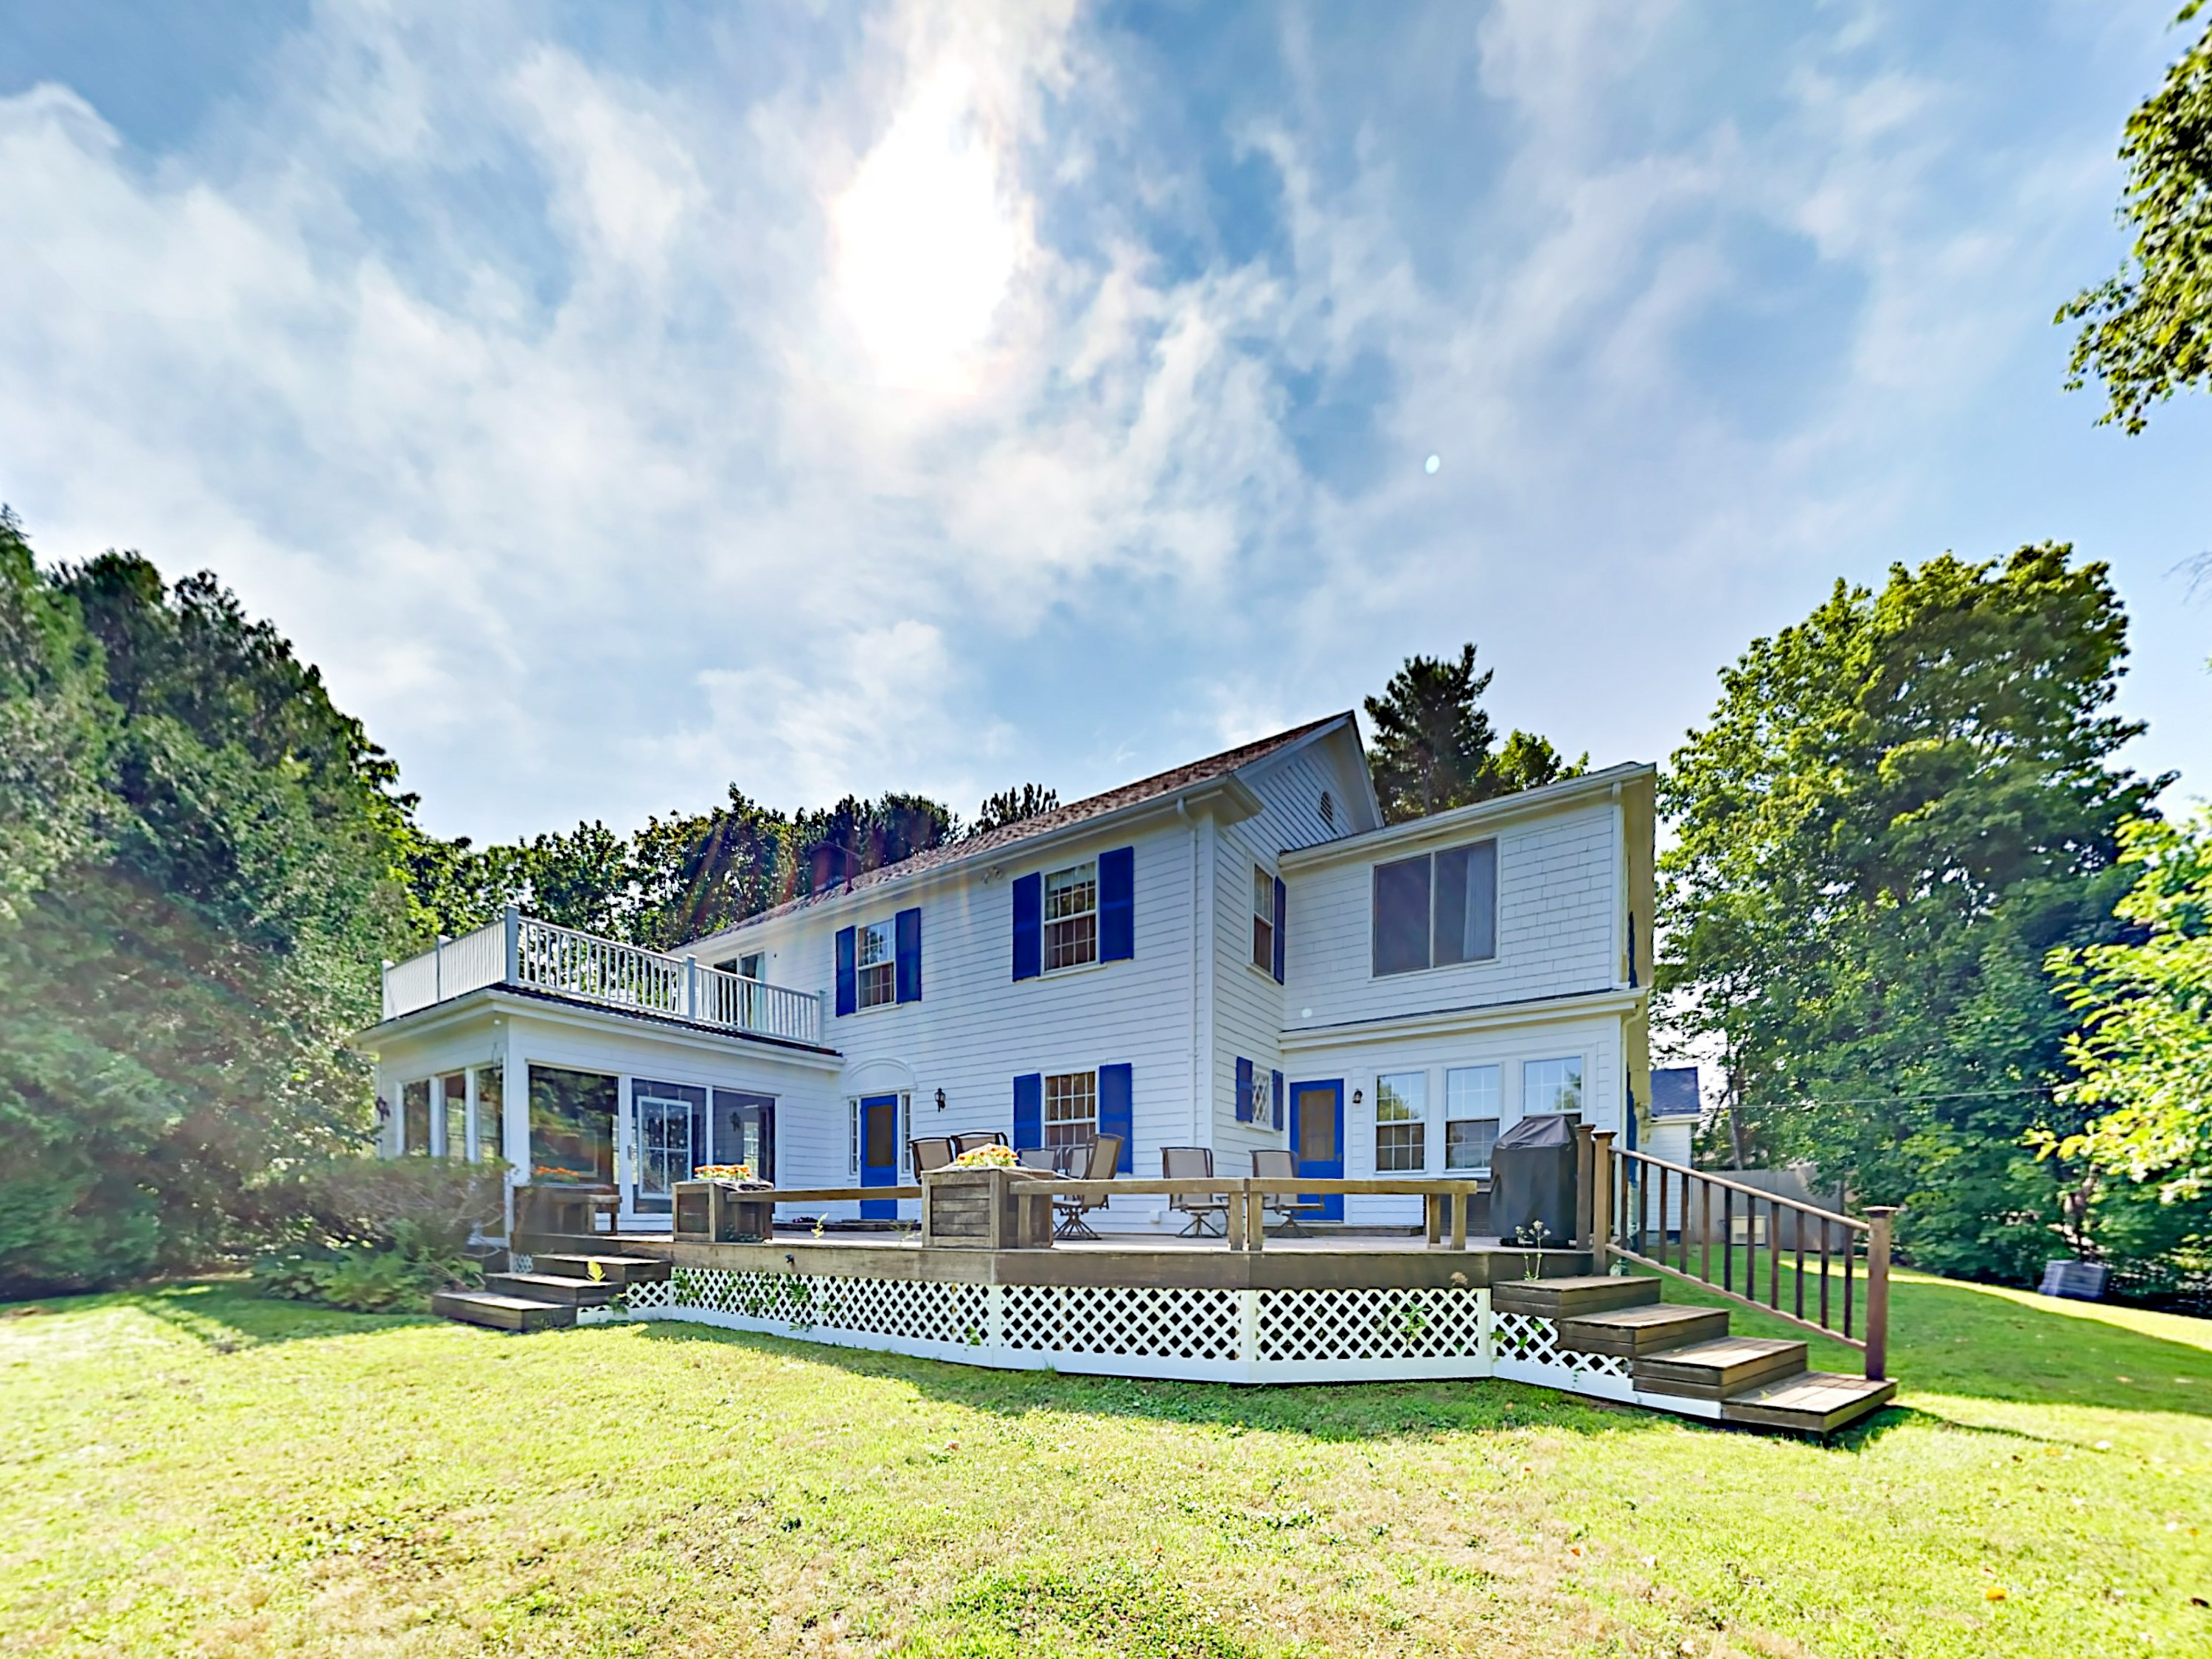 Rockport ME Vacation Rental Welcome to Rockport,